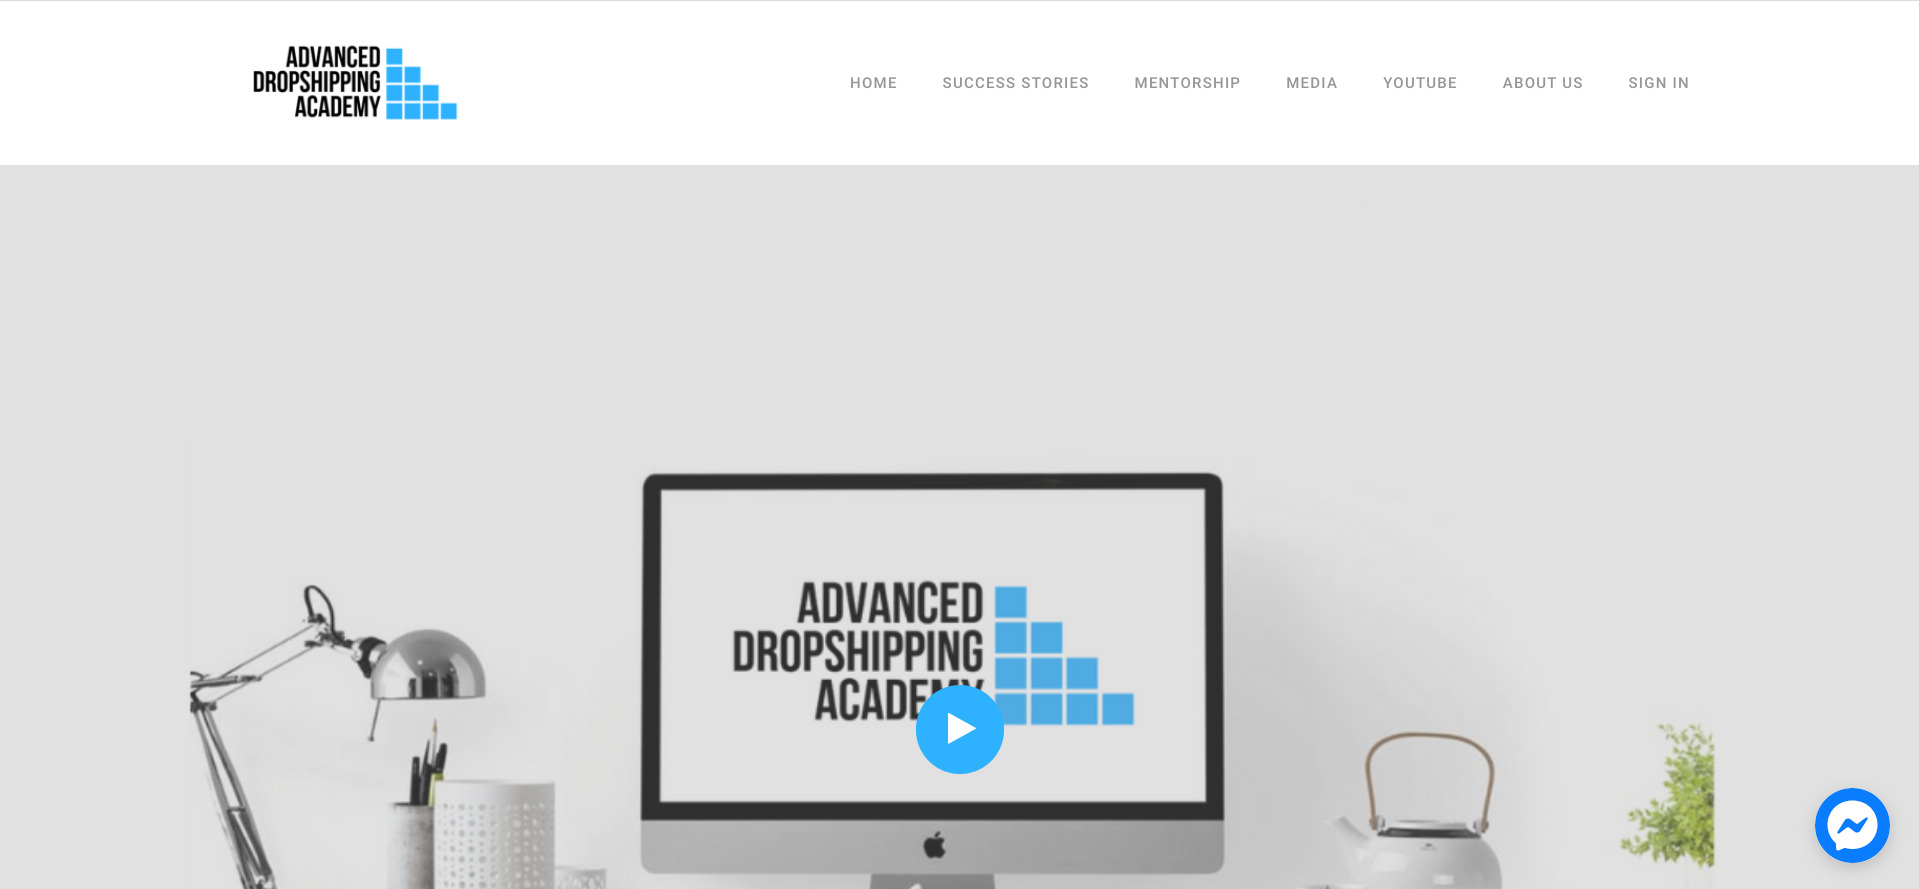 Is Advanced Dropshipping Academy a Scam or Legit